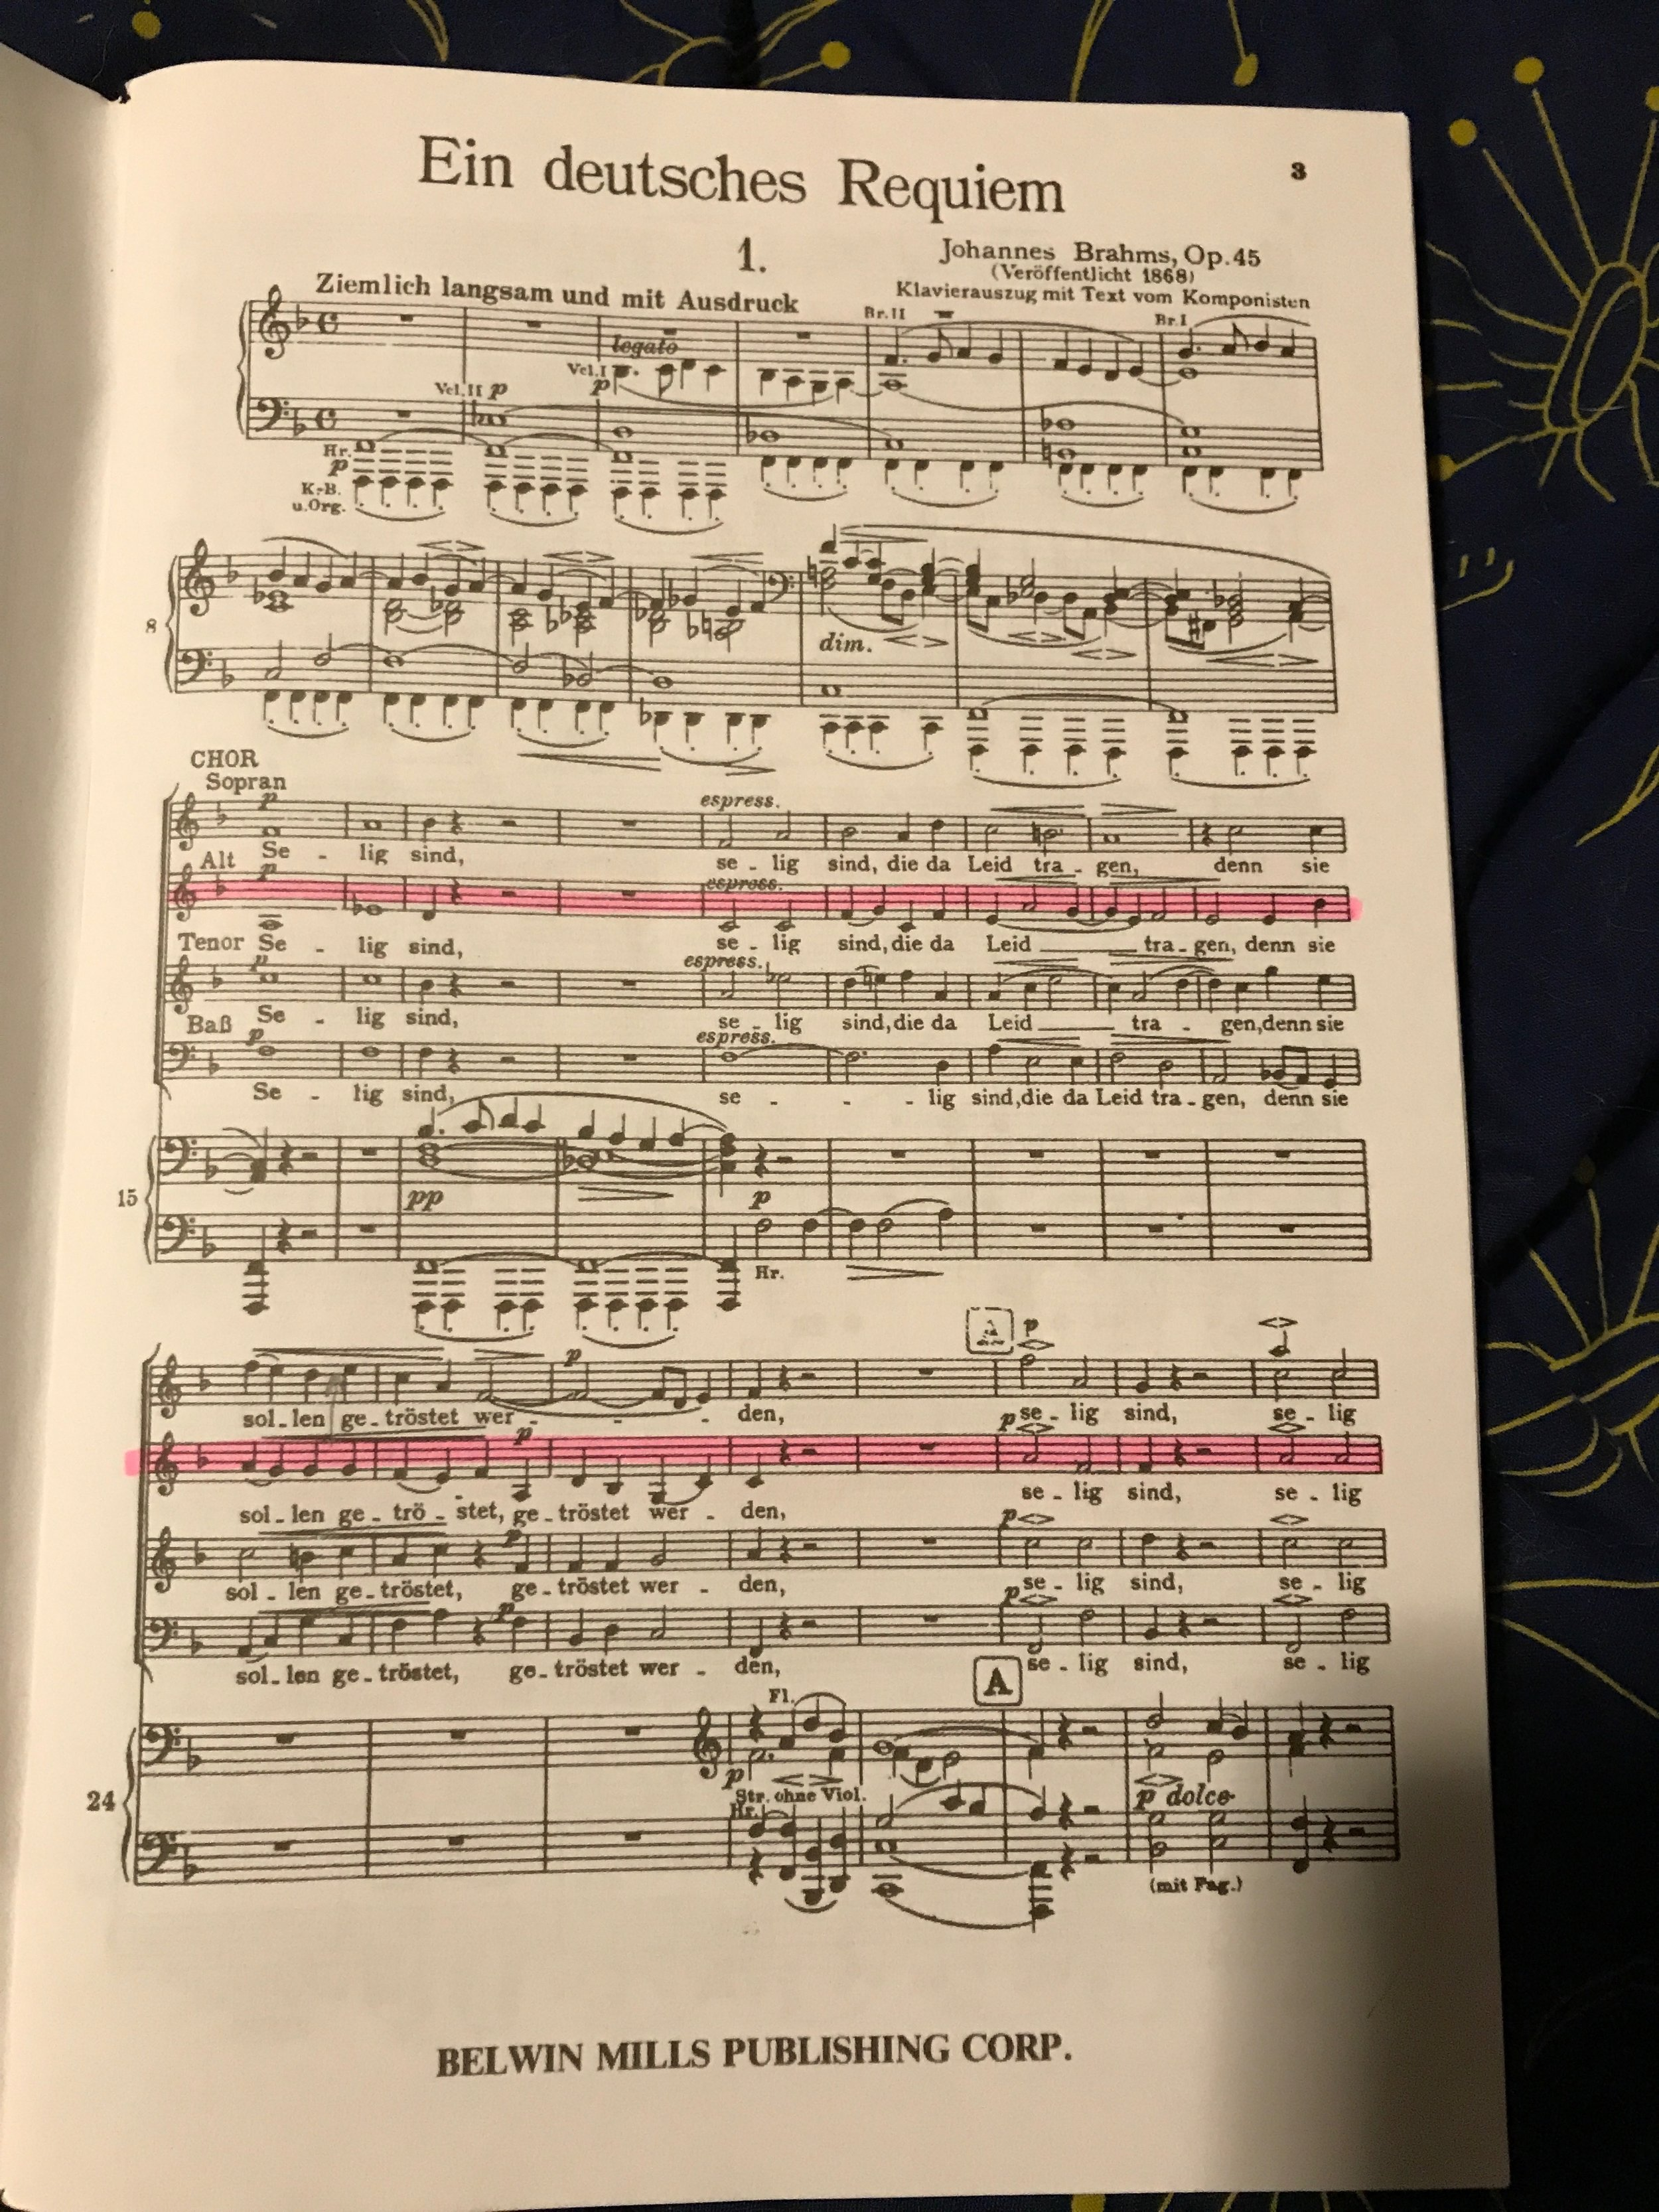 Brahms German Requiem -- gorgeous but time consuming to learn!